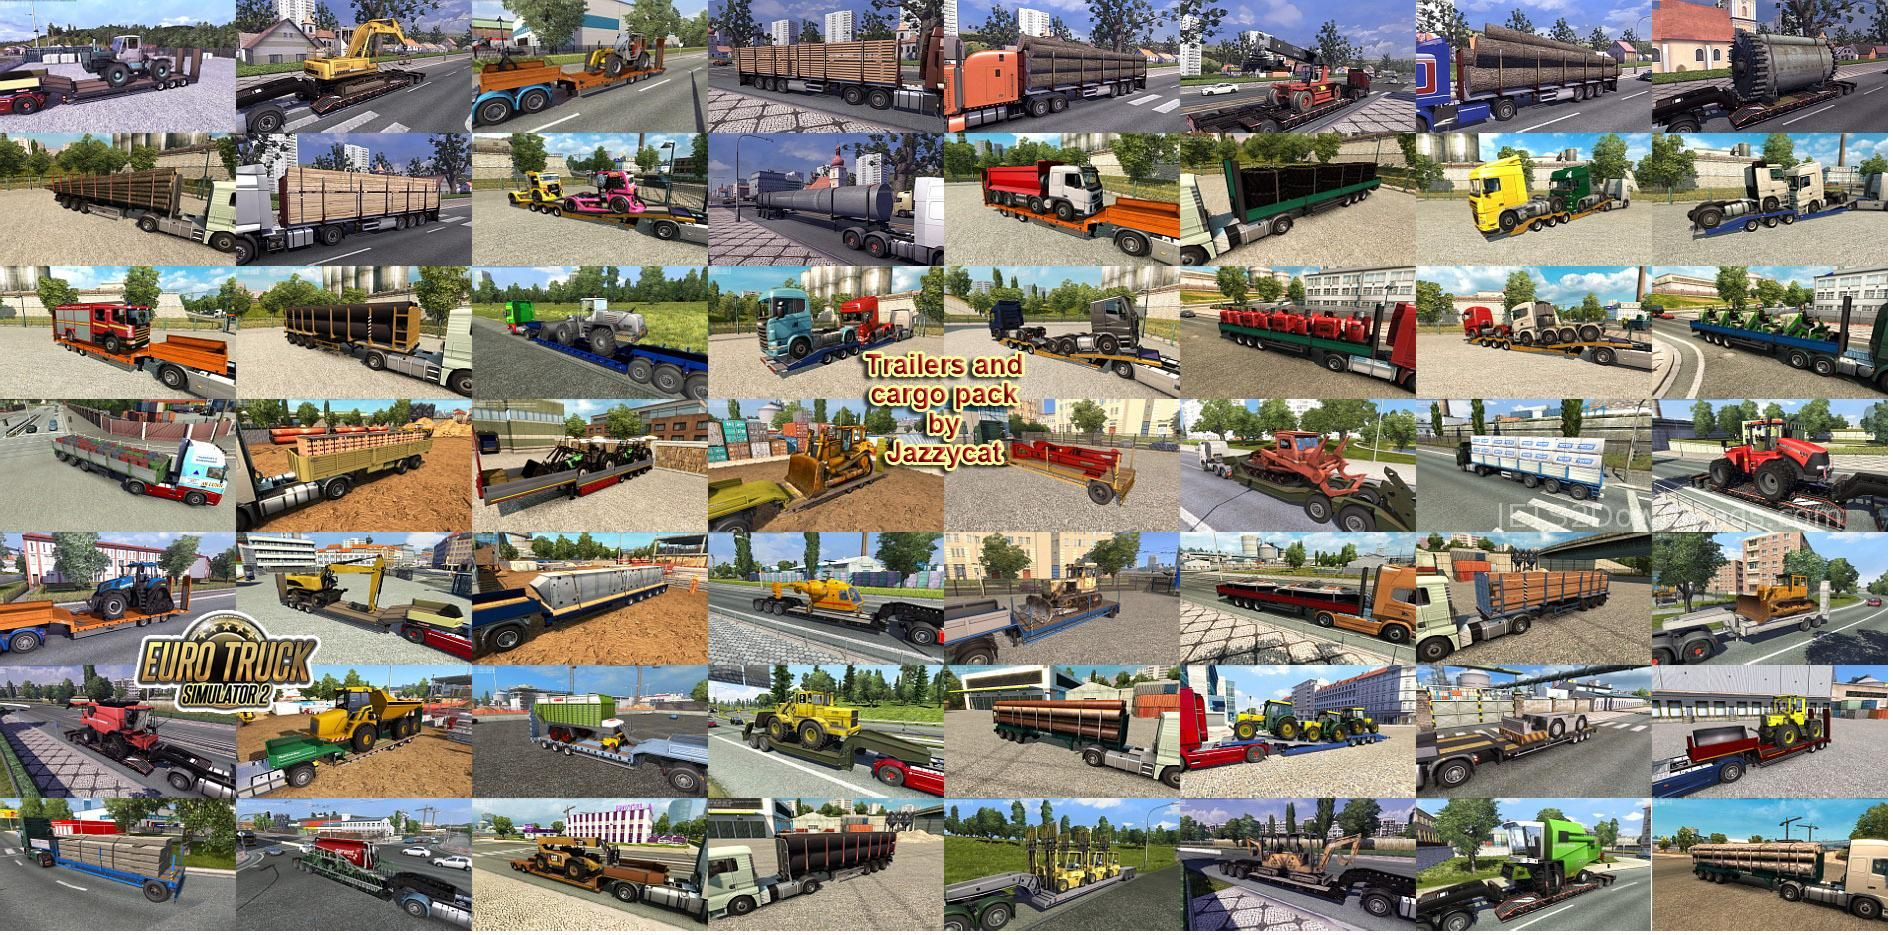 trailers-cargo-pack-jazzycat-2-1